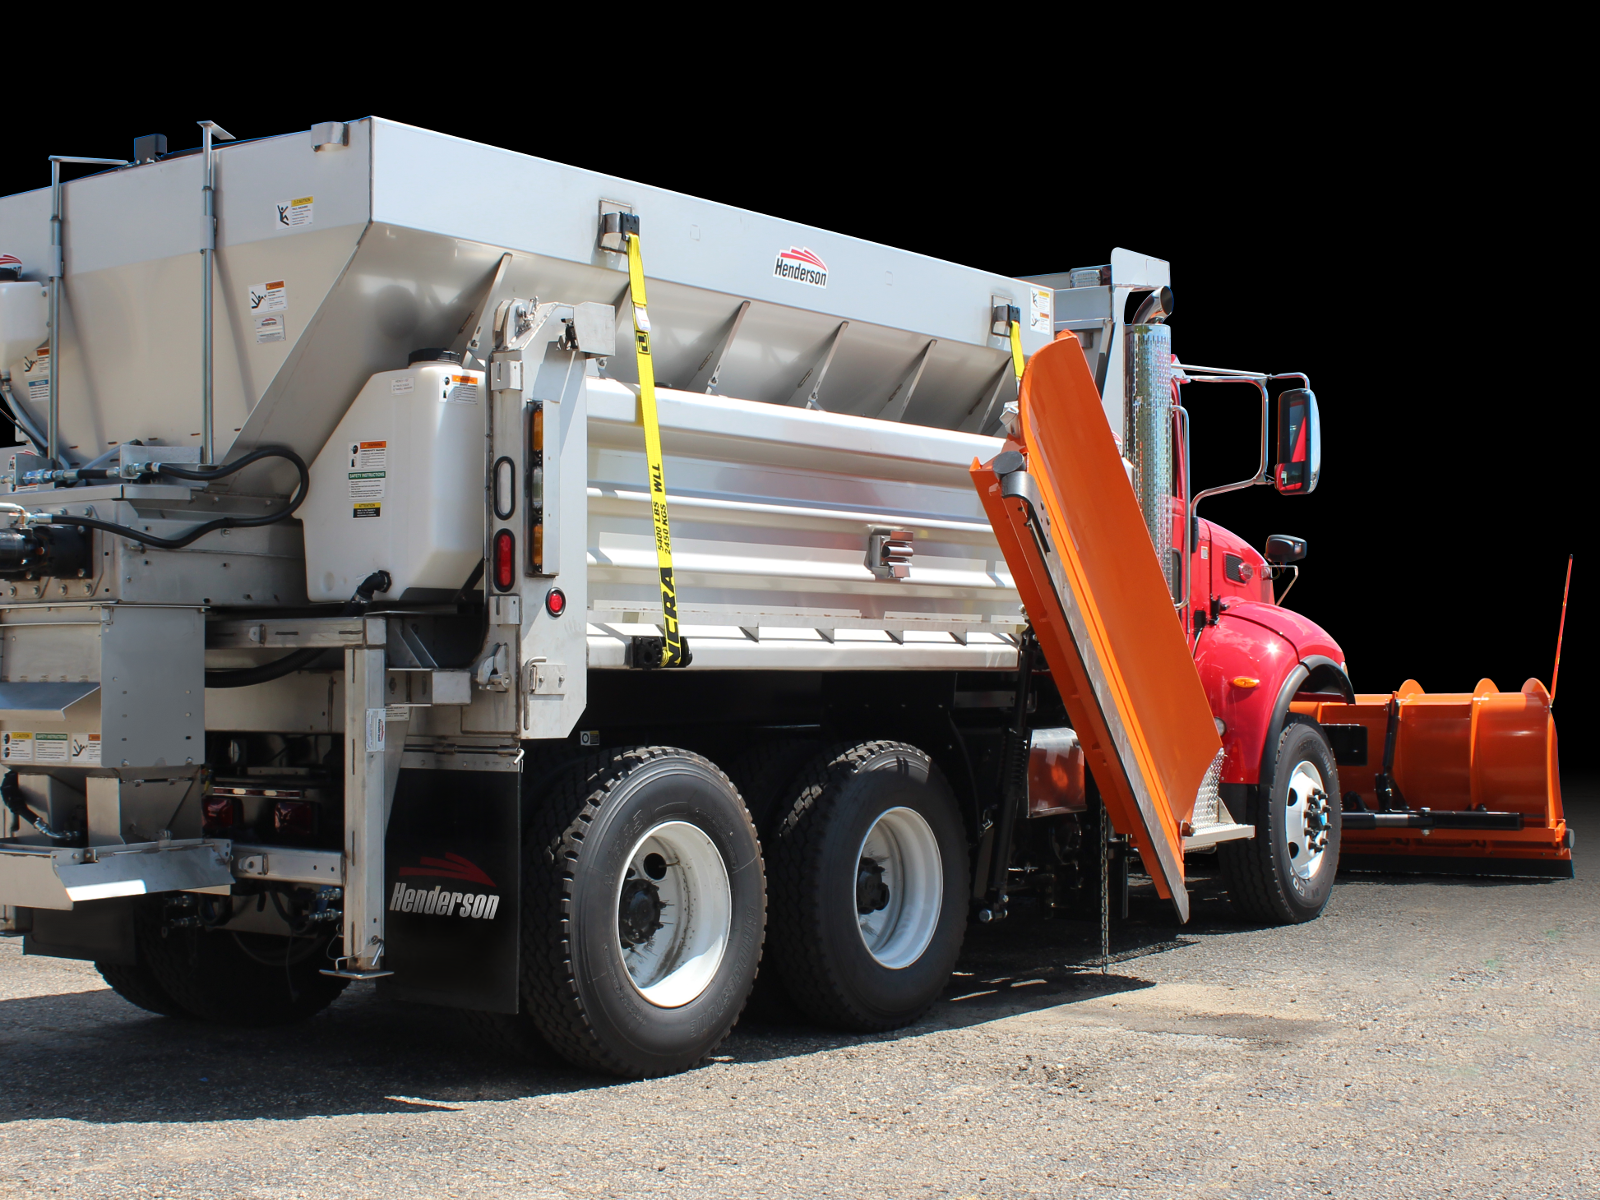 Plows and Spreaders